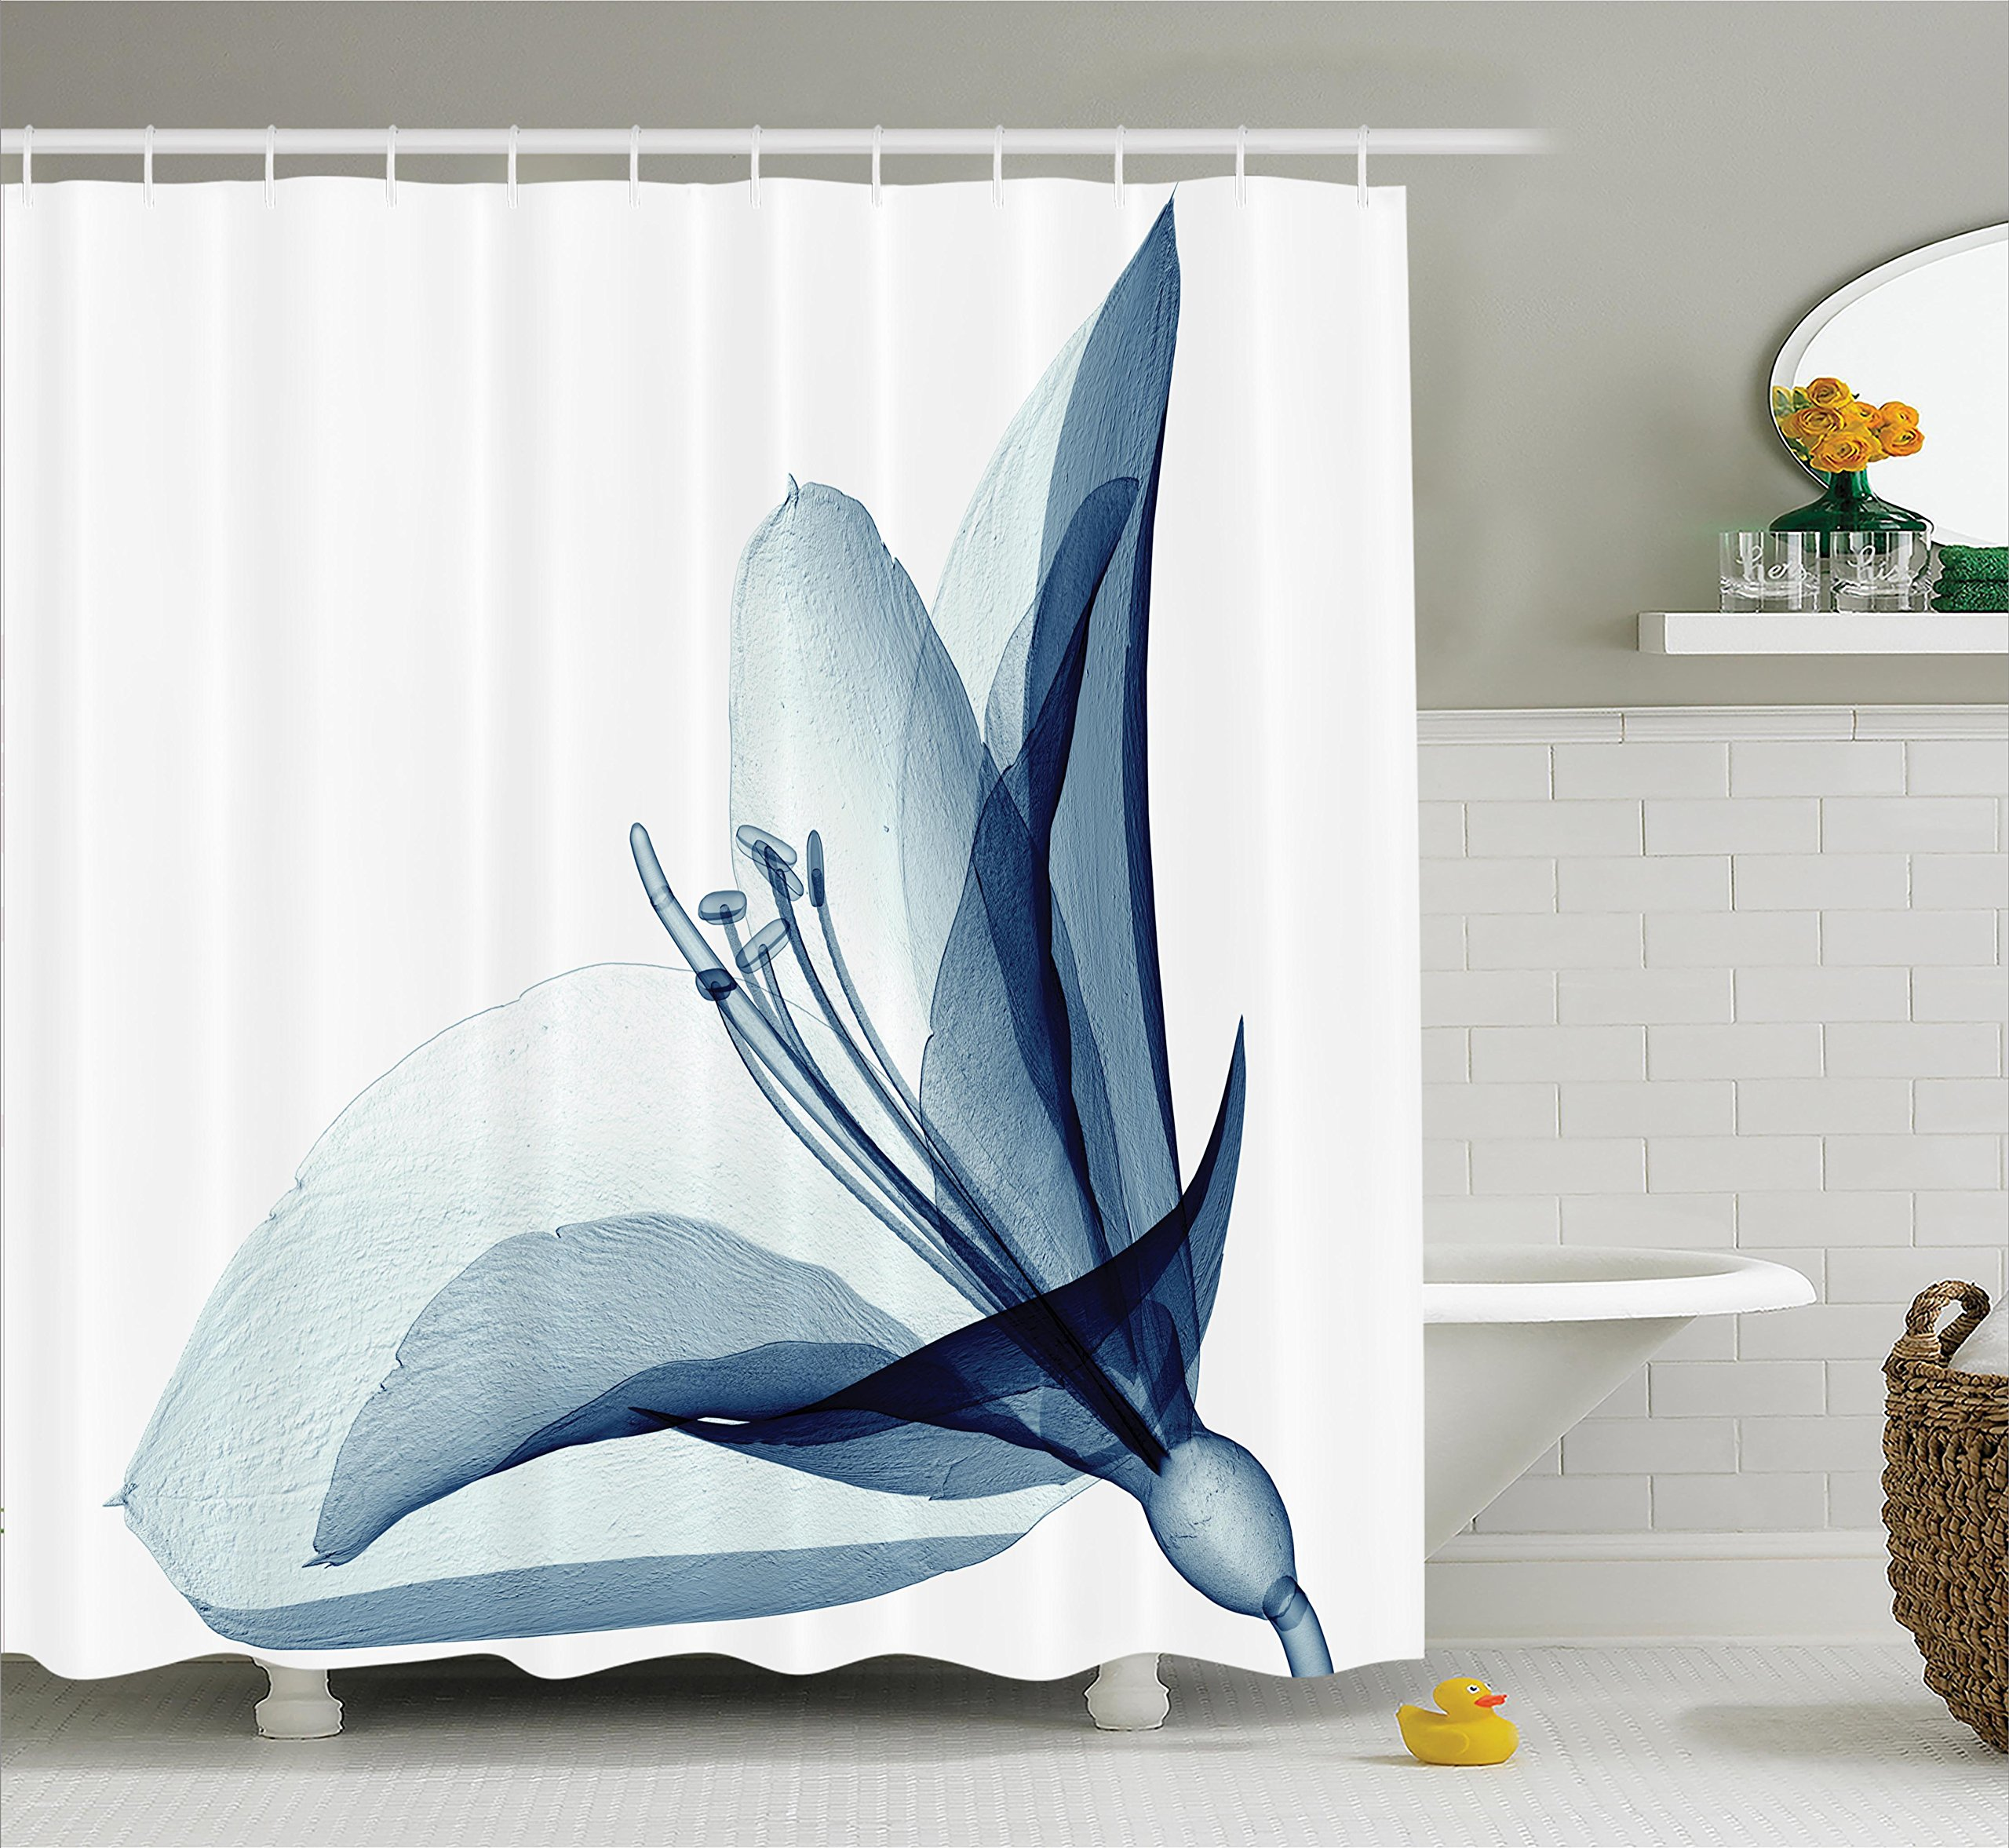 Ambesonne Xray Flower Decor Collection, X-ray Inspired Transparent Image of Amaryllis Flower Nature Decorating Artwork, Polyester Fabric Bathroom Shower Curtain, 84 Inches Extra Long, Teal White